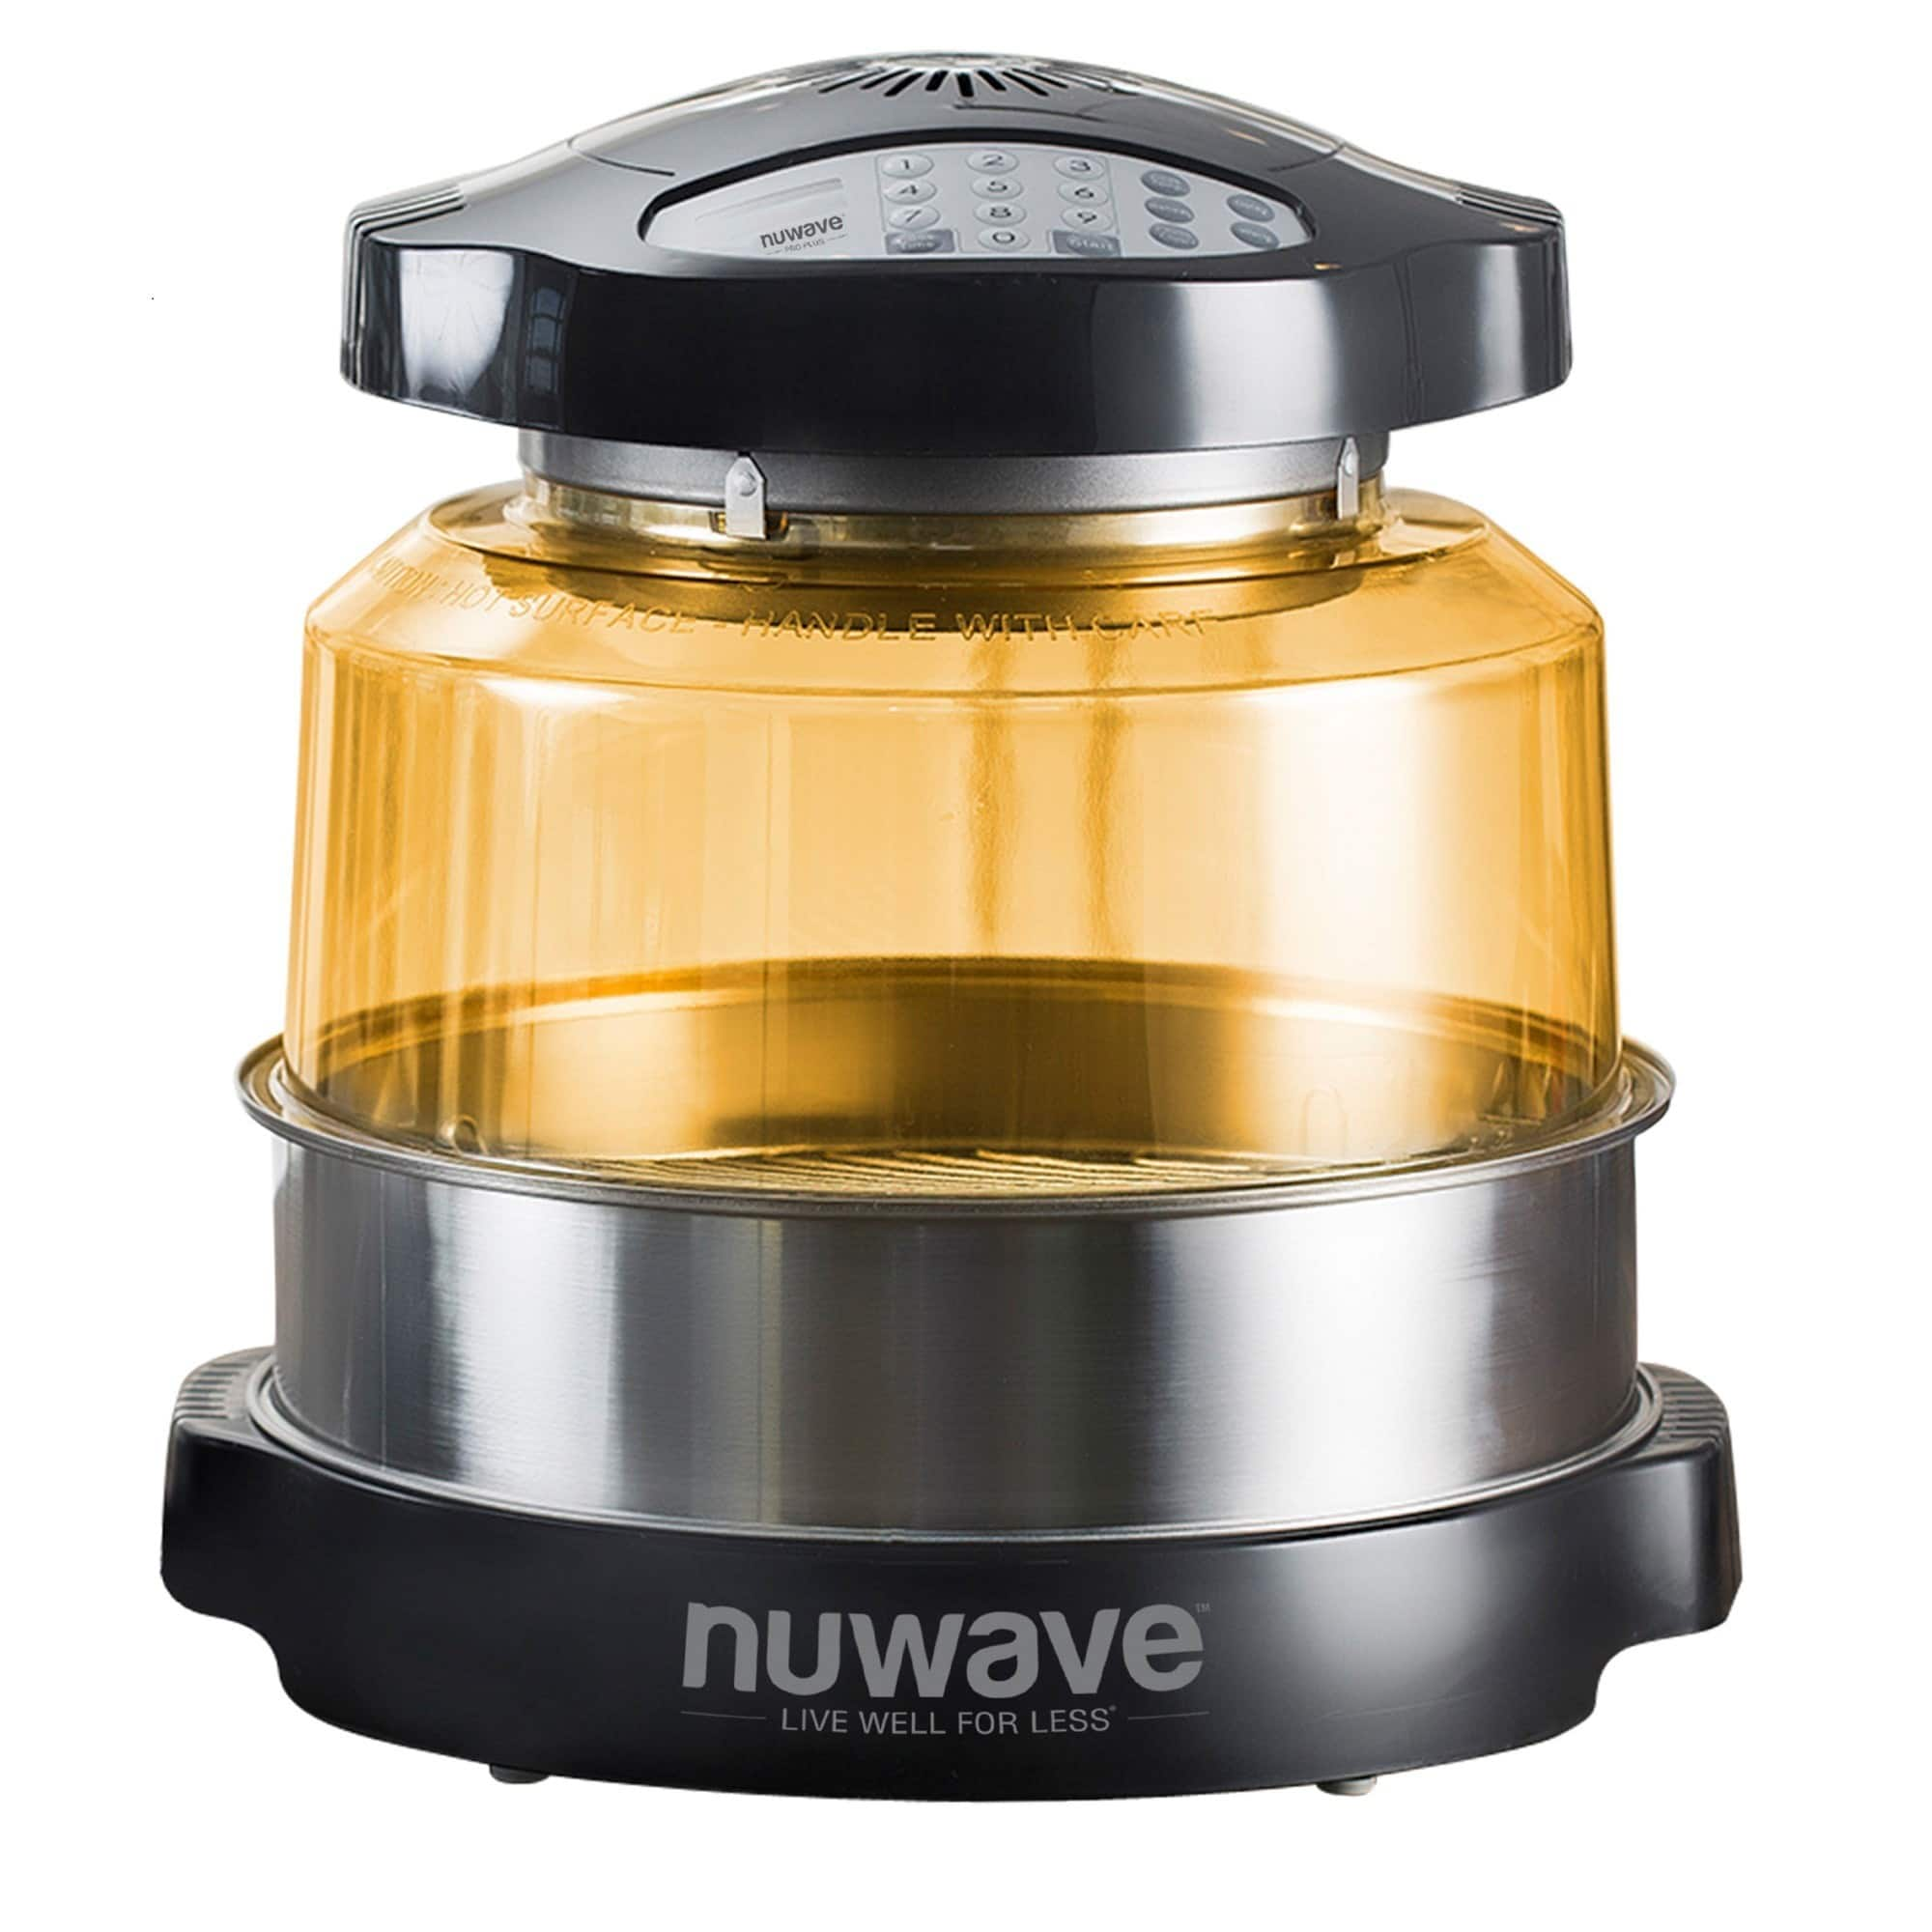 NuWave Oven Scam or Saving The World Through Healthy Eating